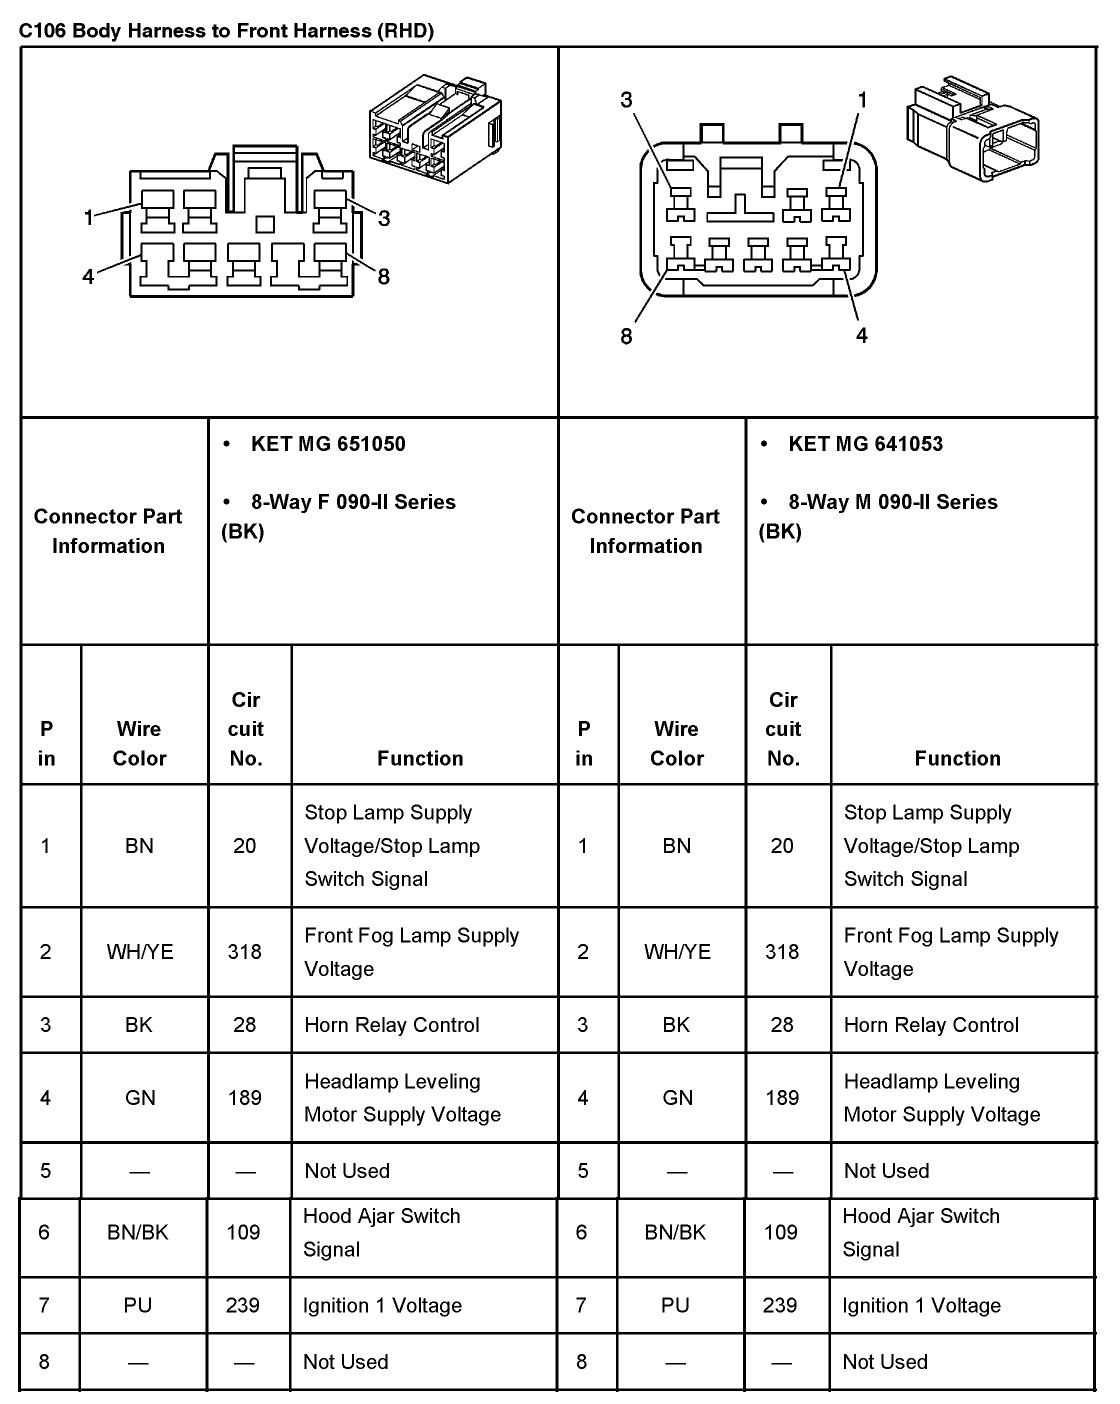 hight resolution of fuse panel diagram for 2005 chevy aveo wiring diagram todayfuse panel diagram for 2005 chevy aveo